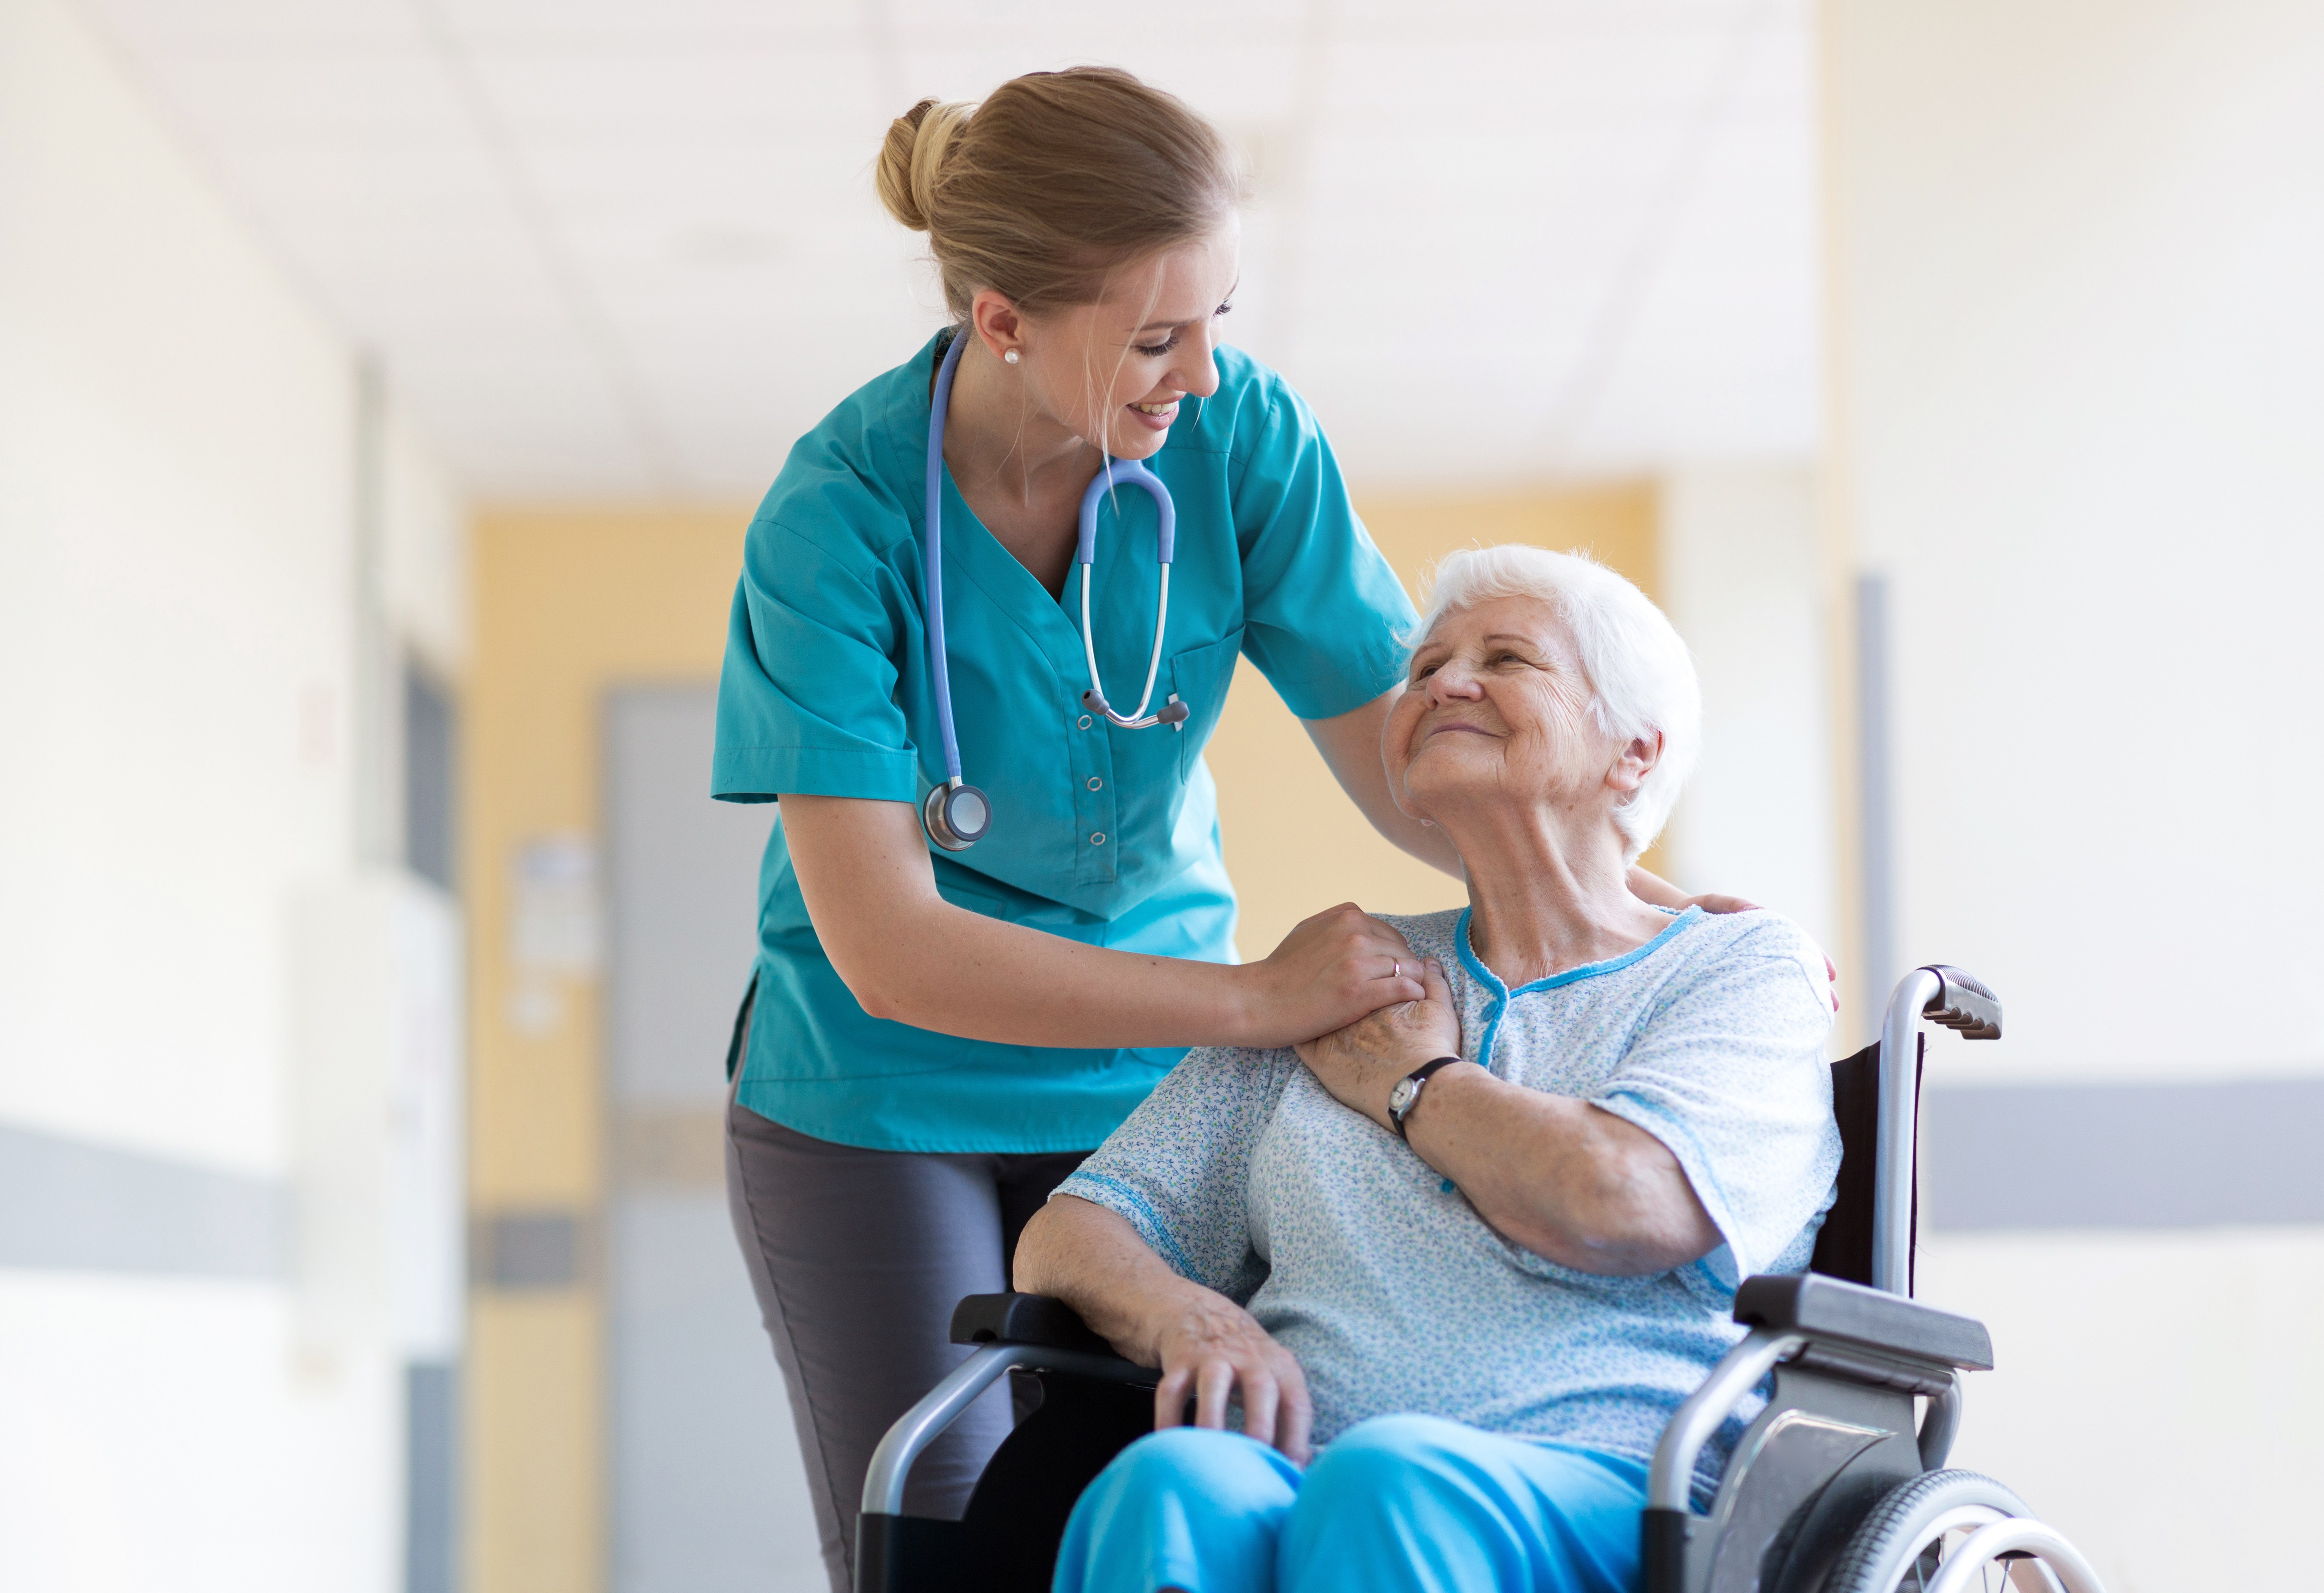 Let's share some sweetness and thank a healthcare worker in a long term care facility.